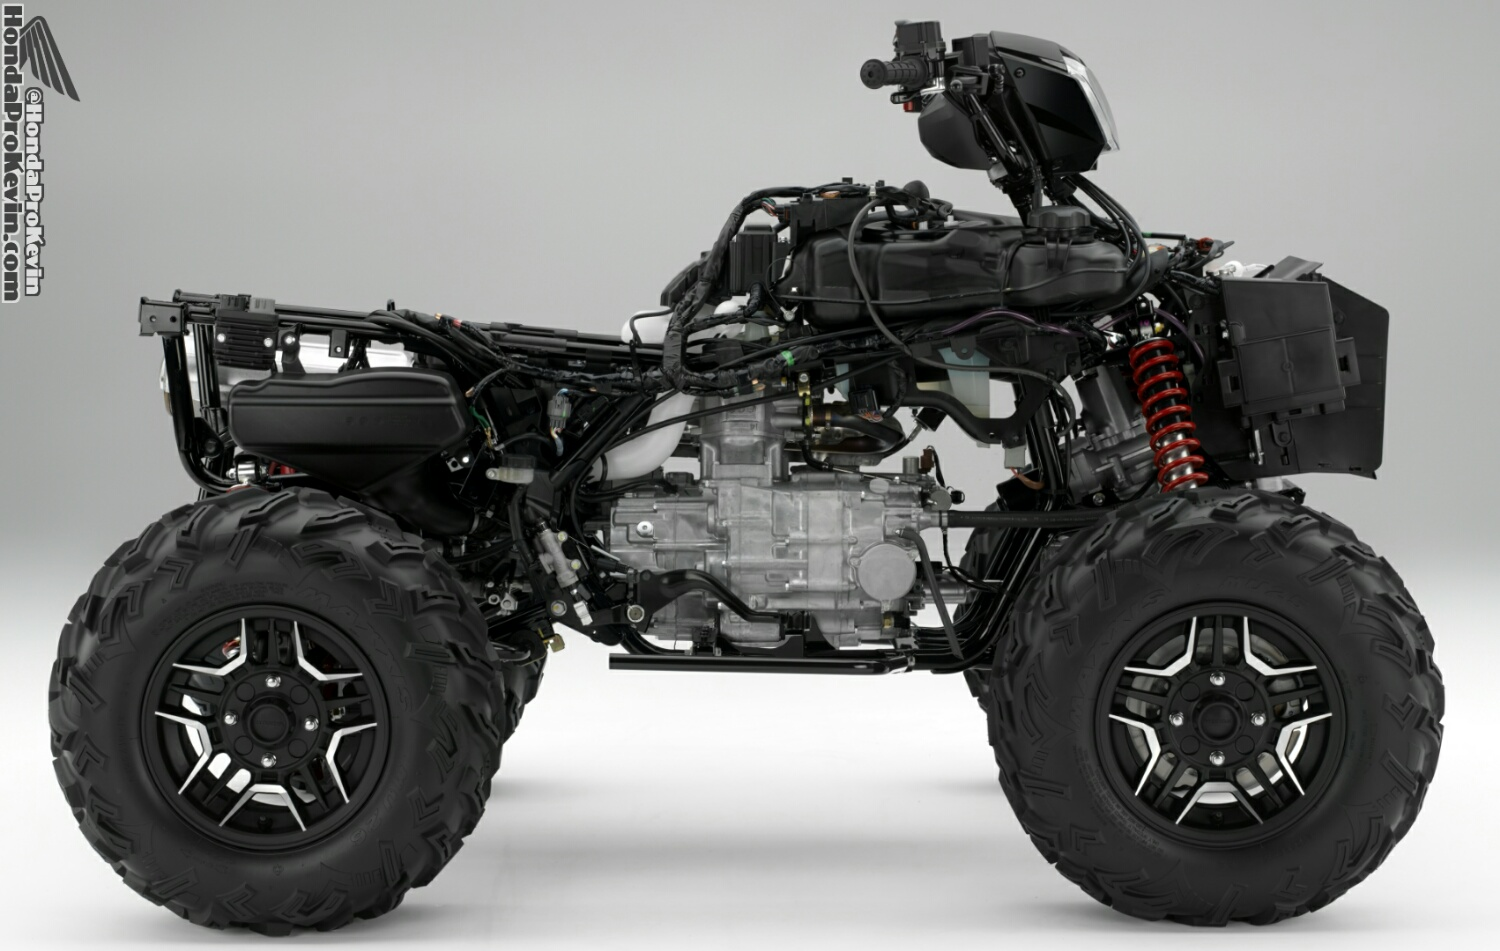 2016 Honda TRX500 Rubicon 500 ATV Review / Specs / Horsepower / Torque Performance Rating